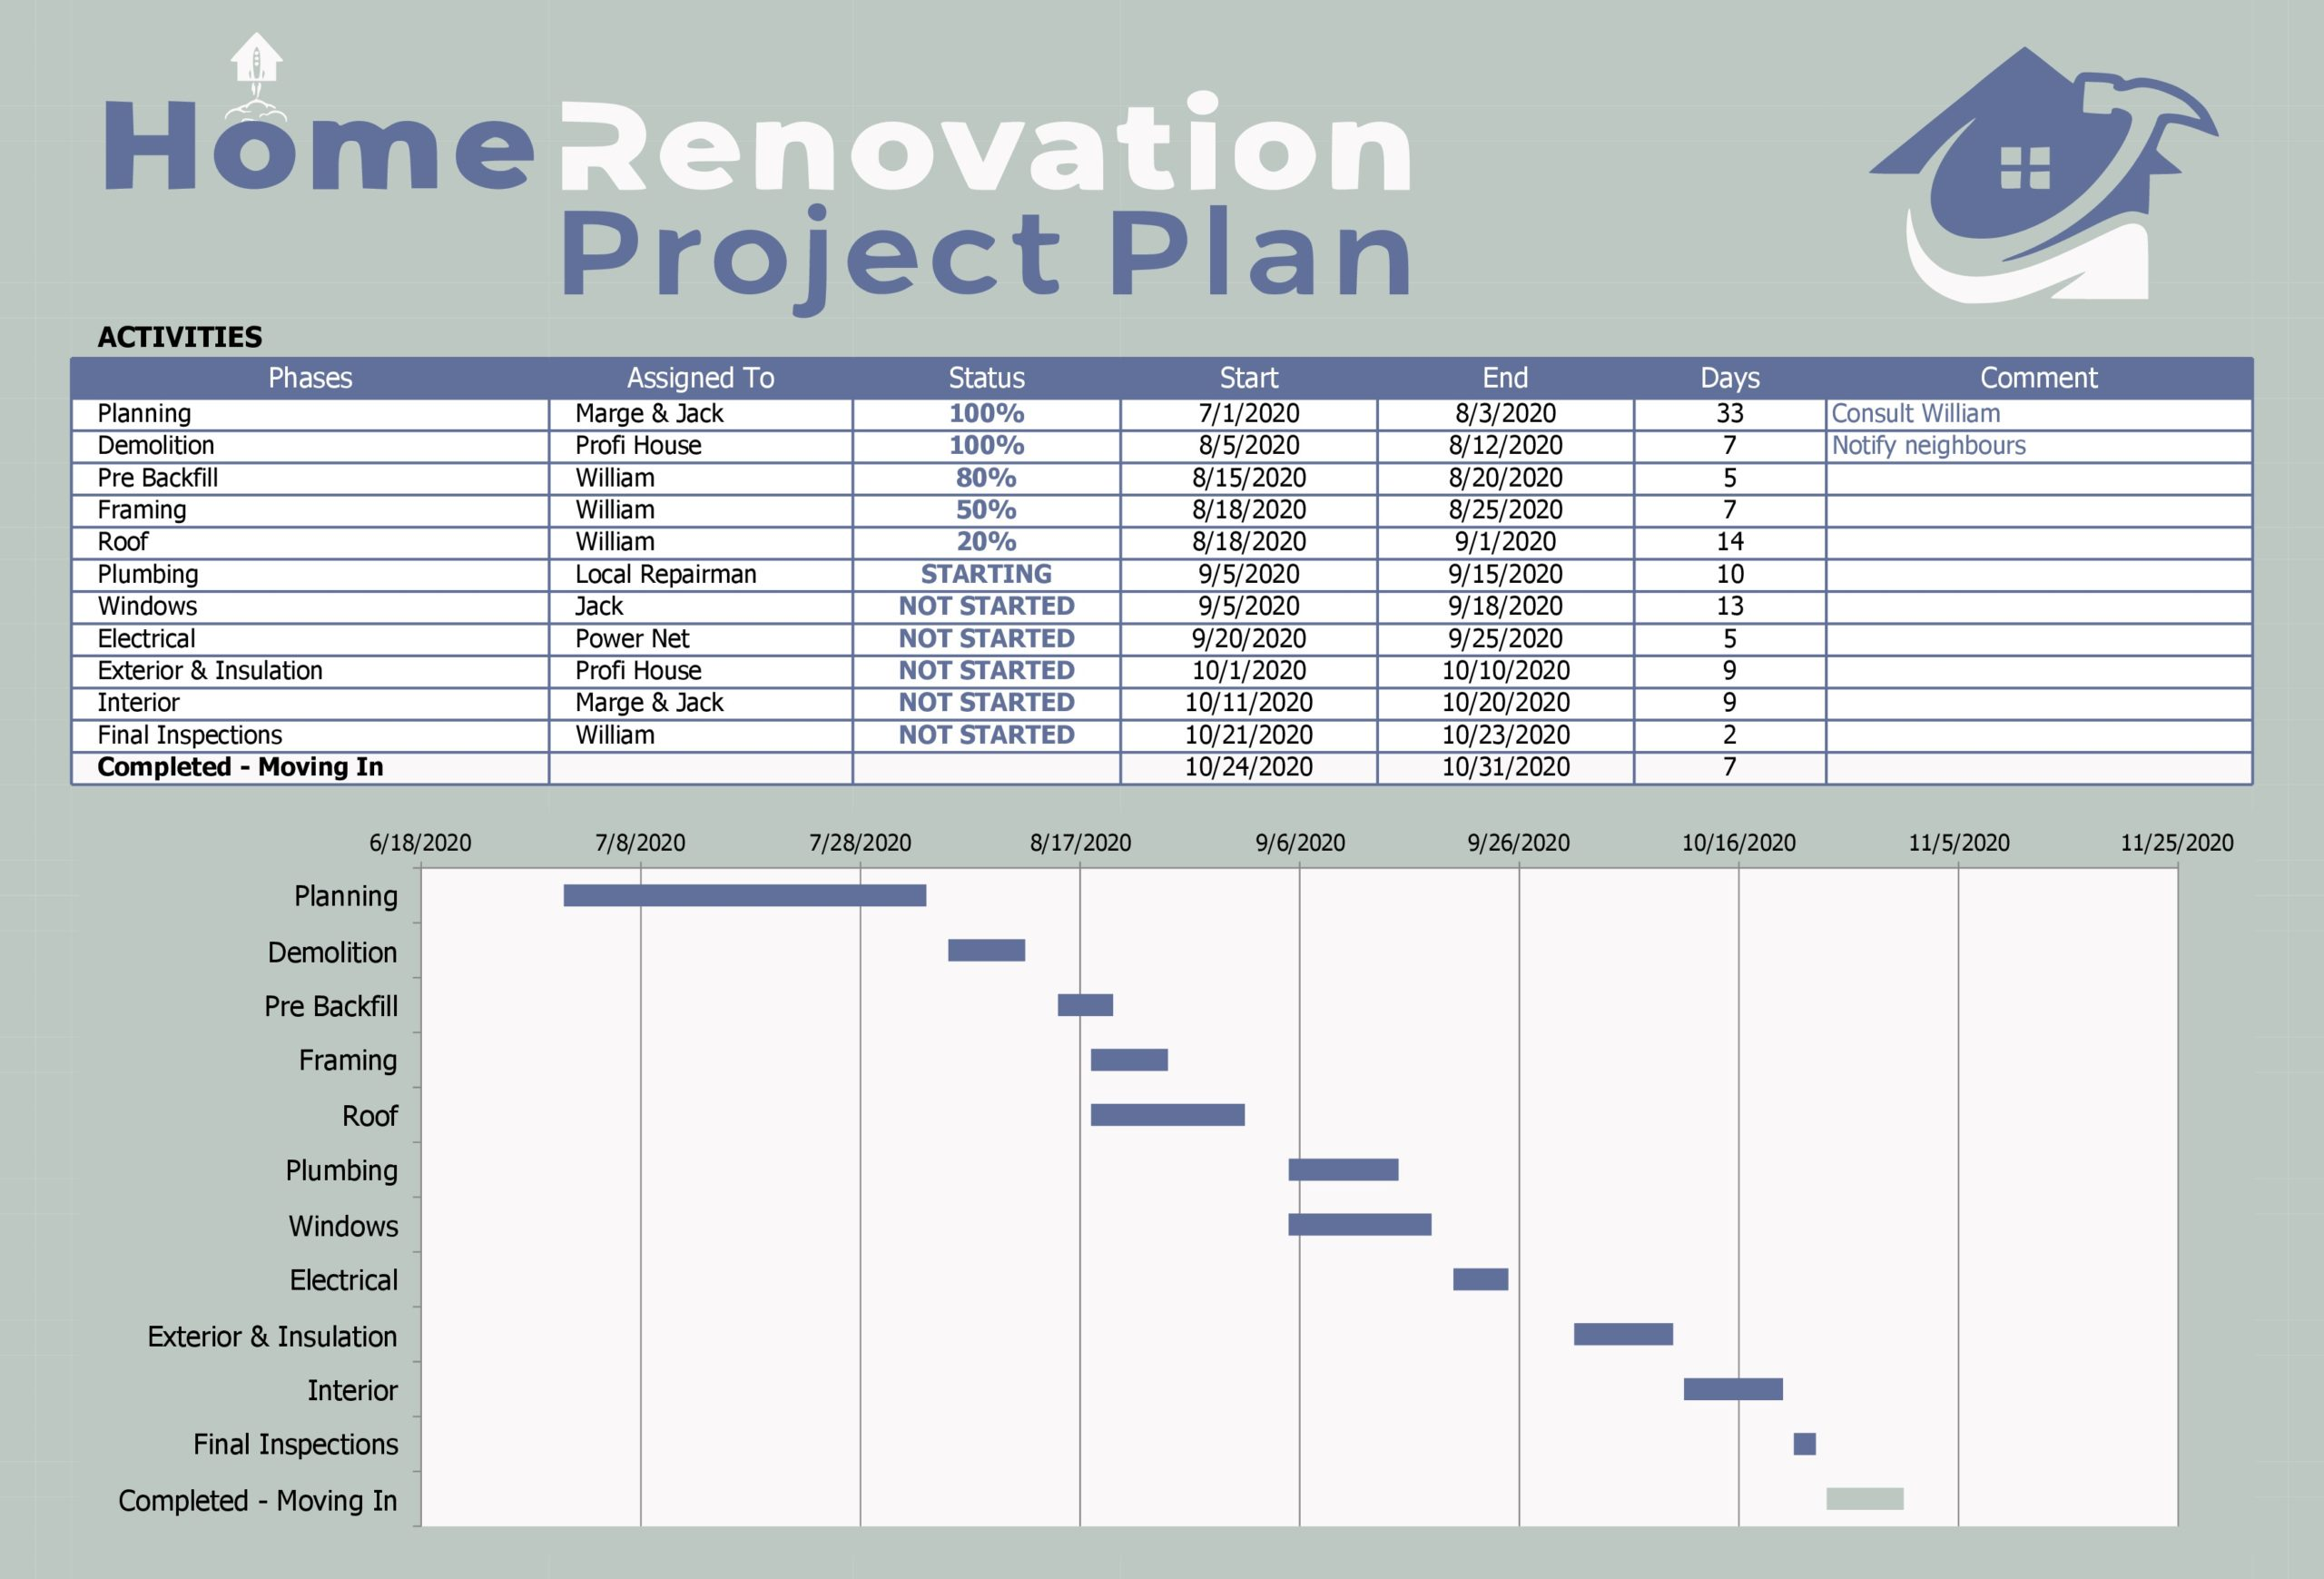 Free Home Renovation Project Plan Template - TemplateLab.com